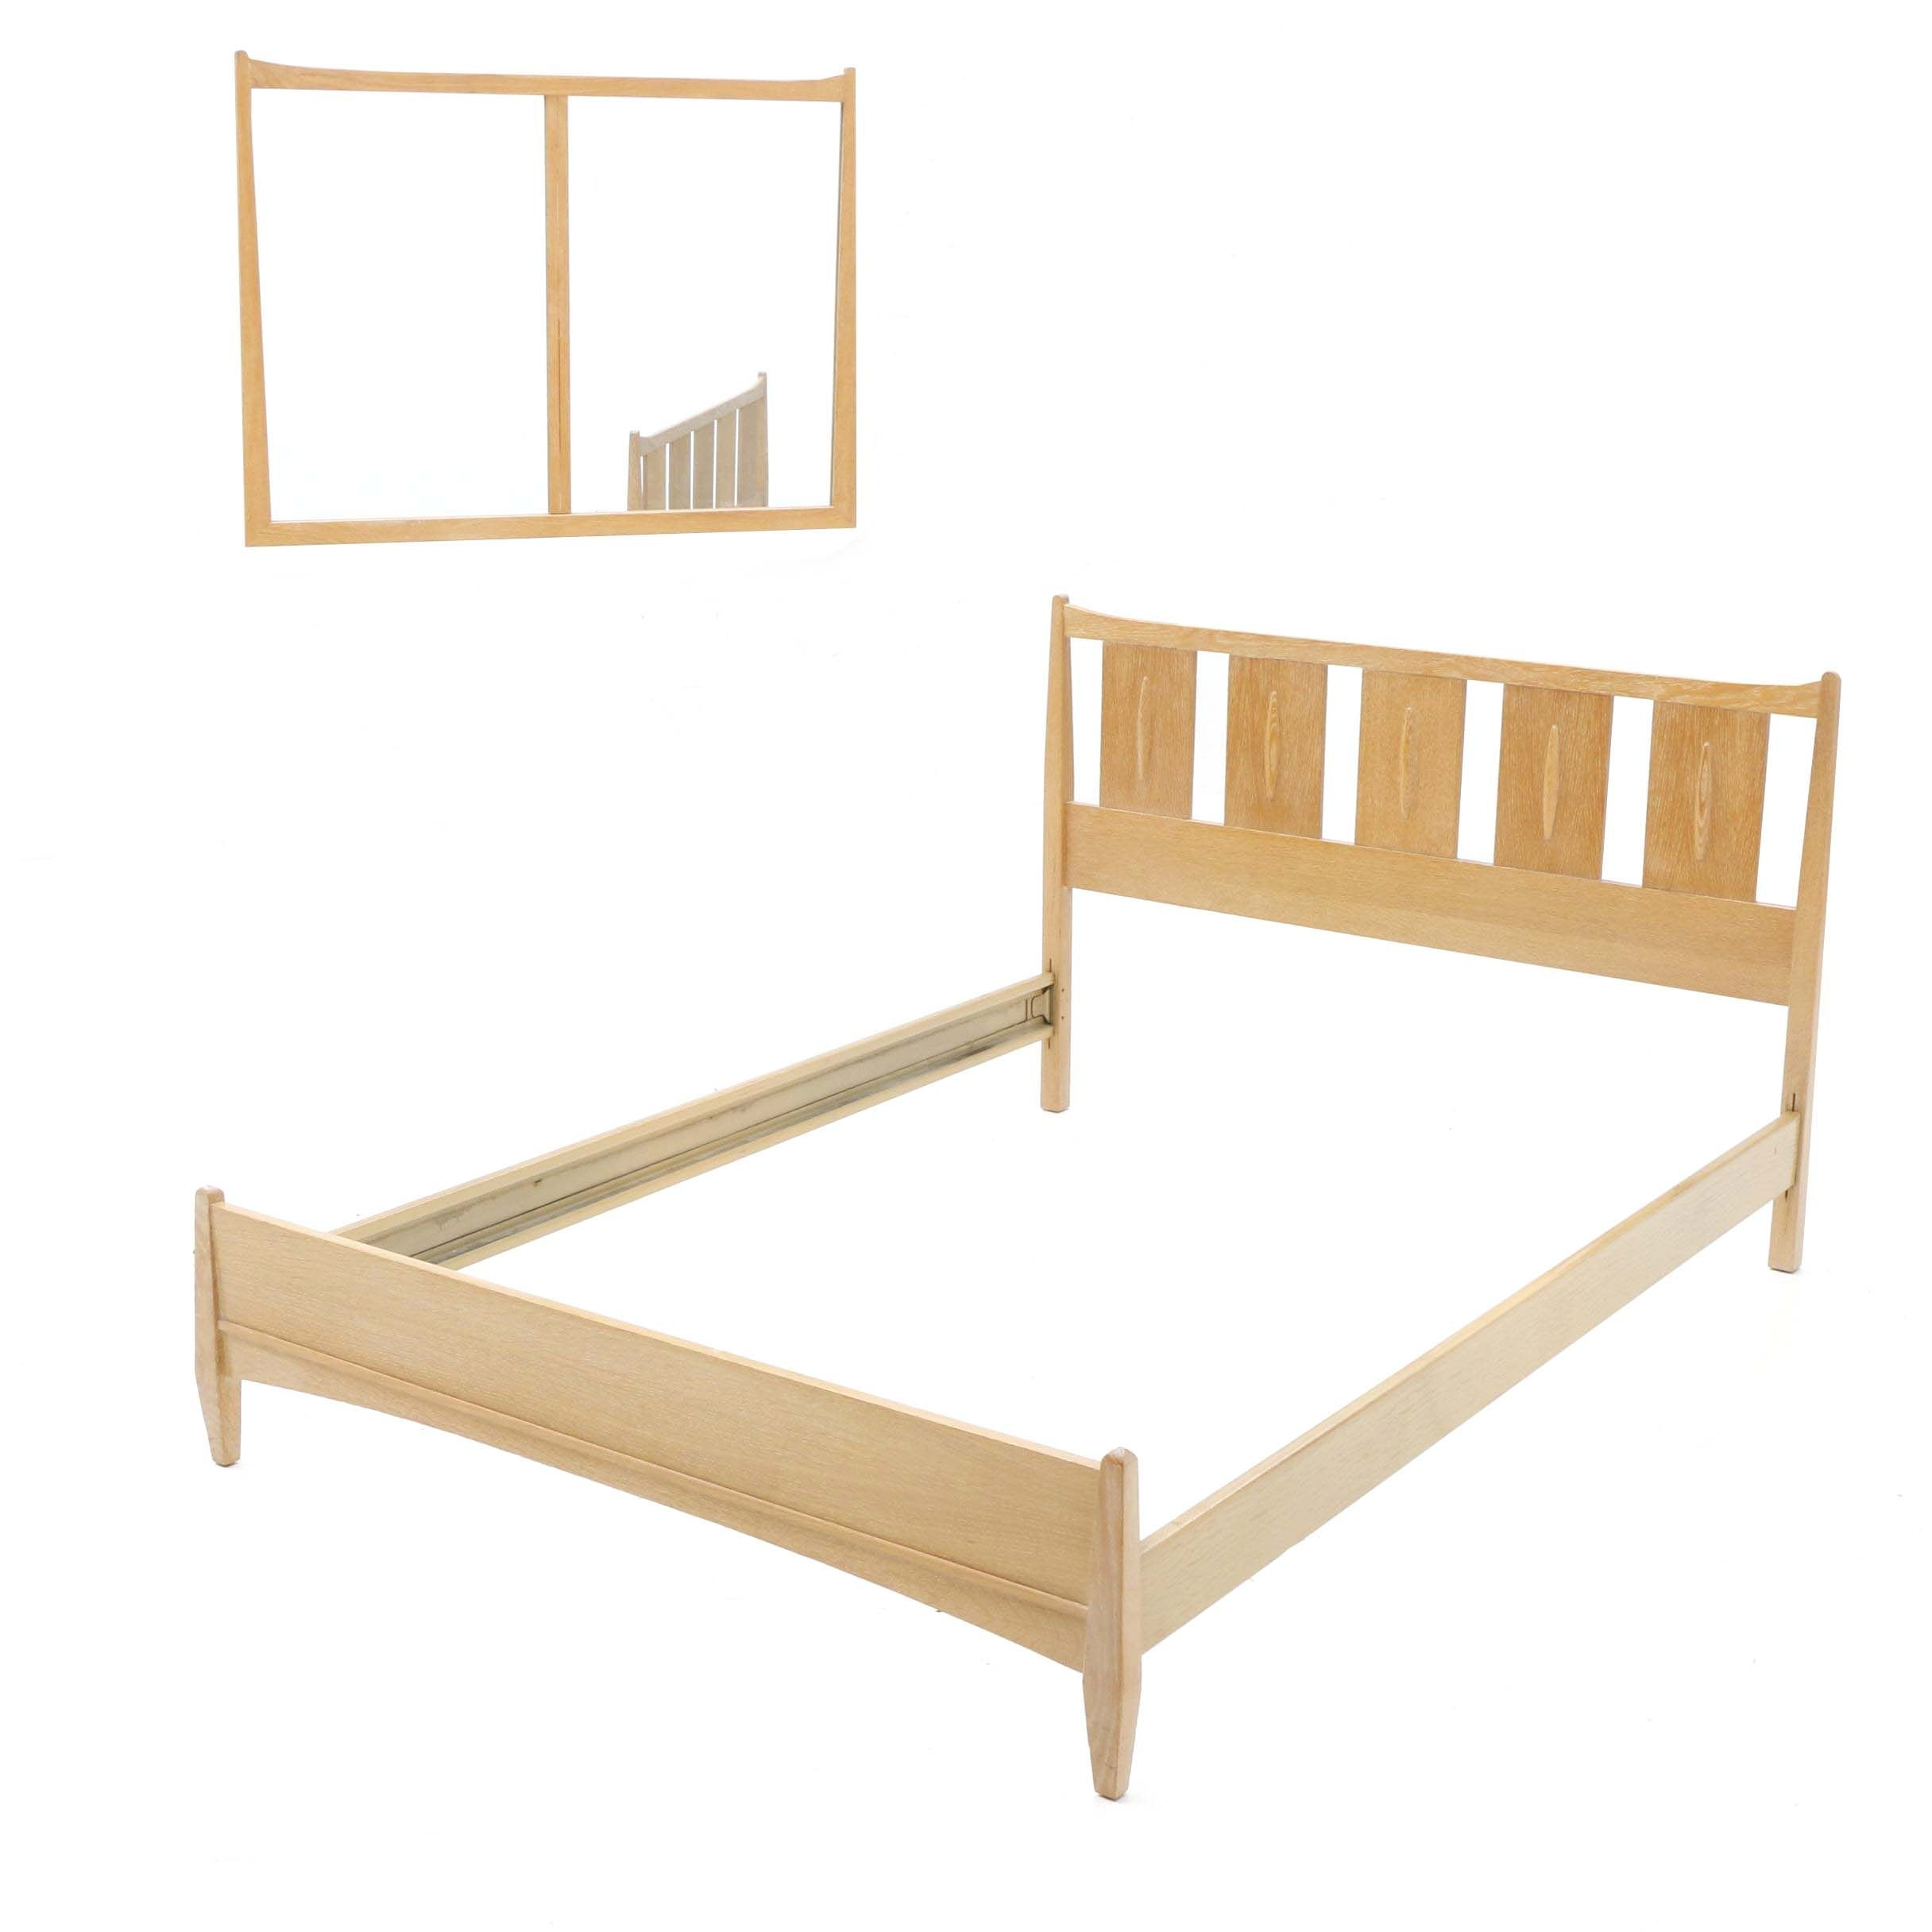 Mid Century Modern Limed Oak Full Size Bed Frame and Wall Mirror